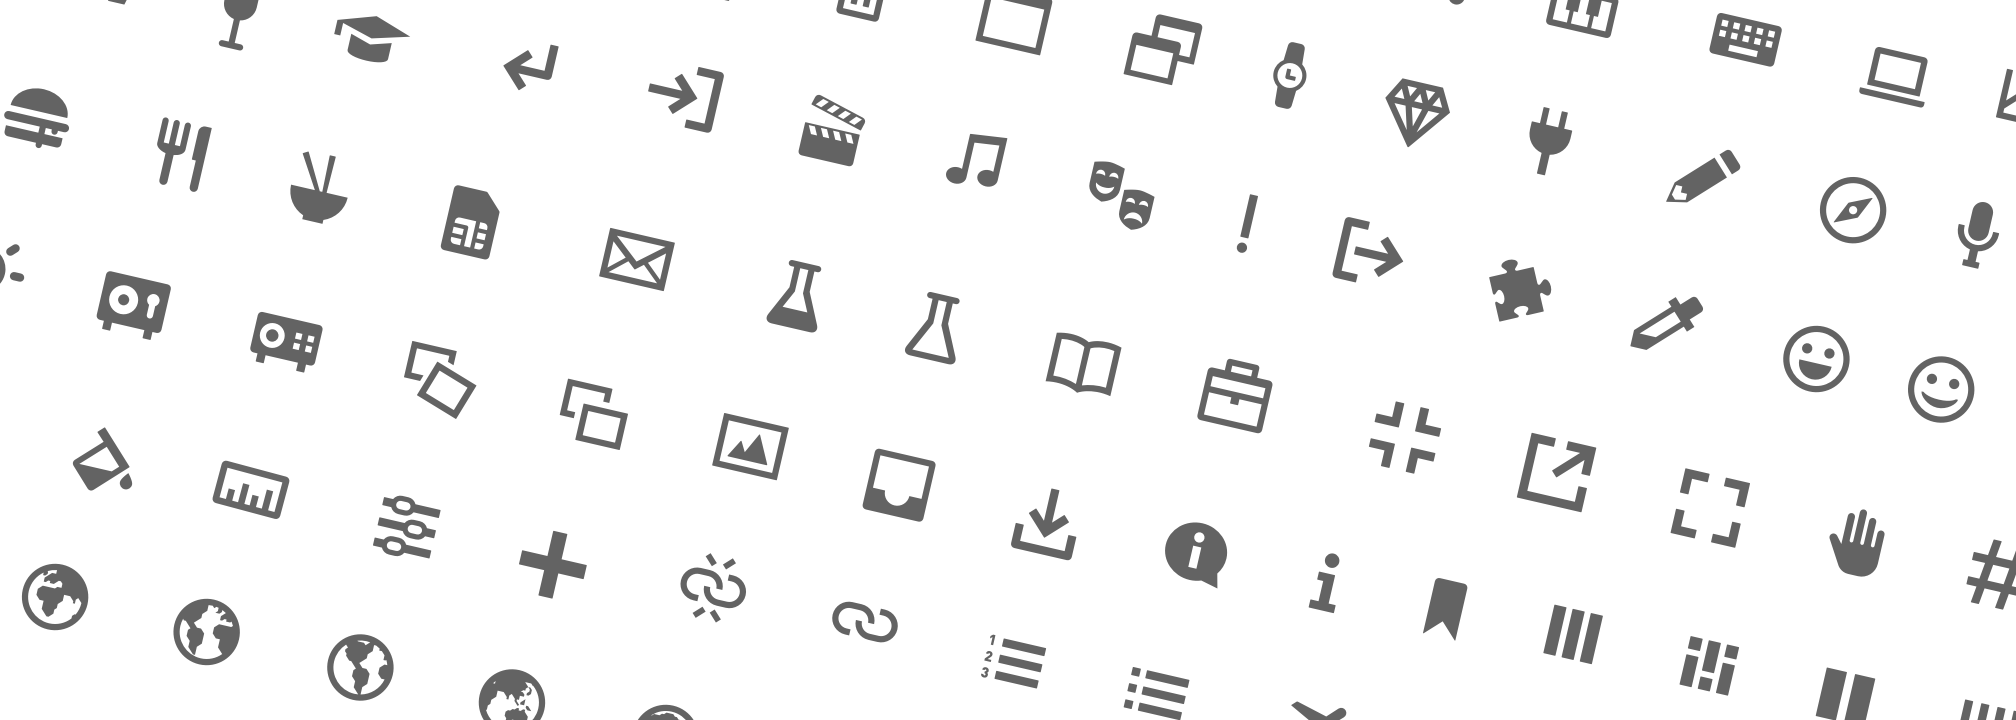 Icon set specimen